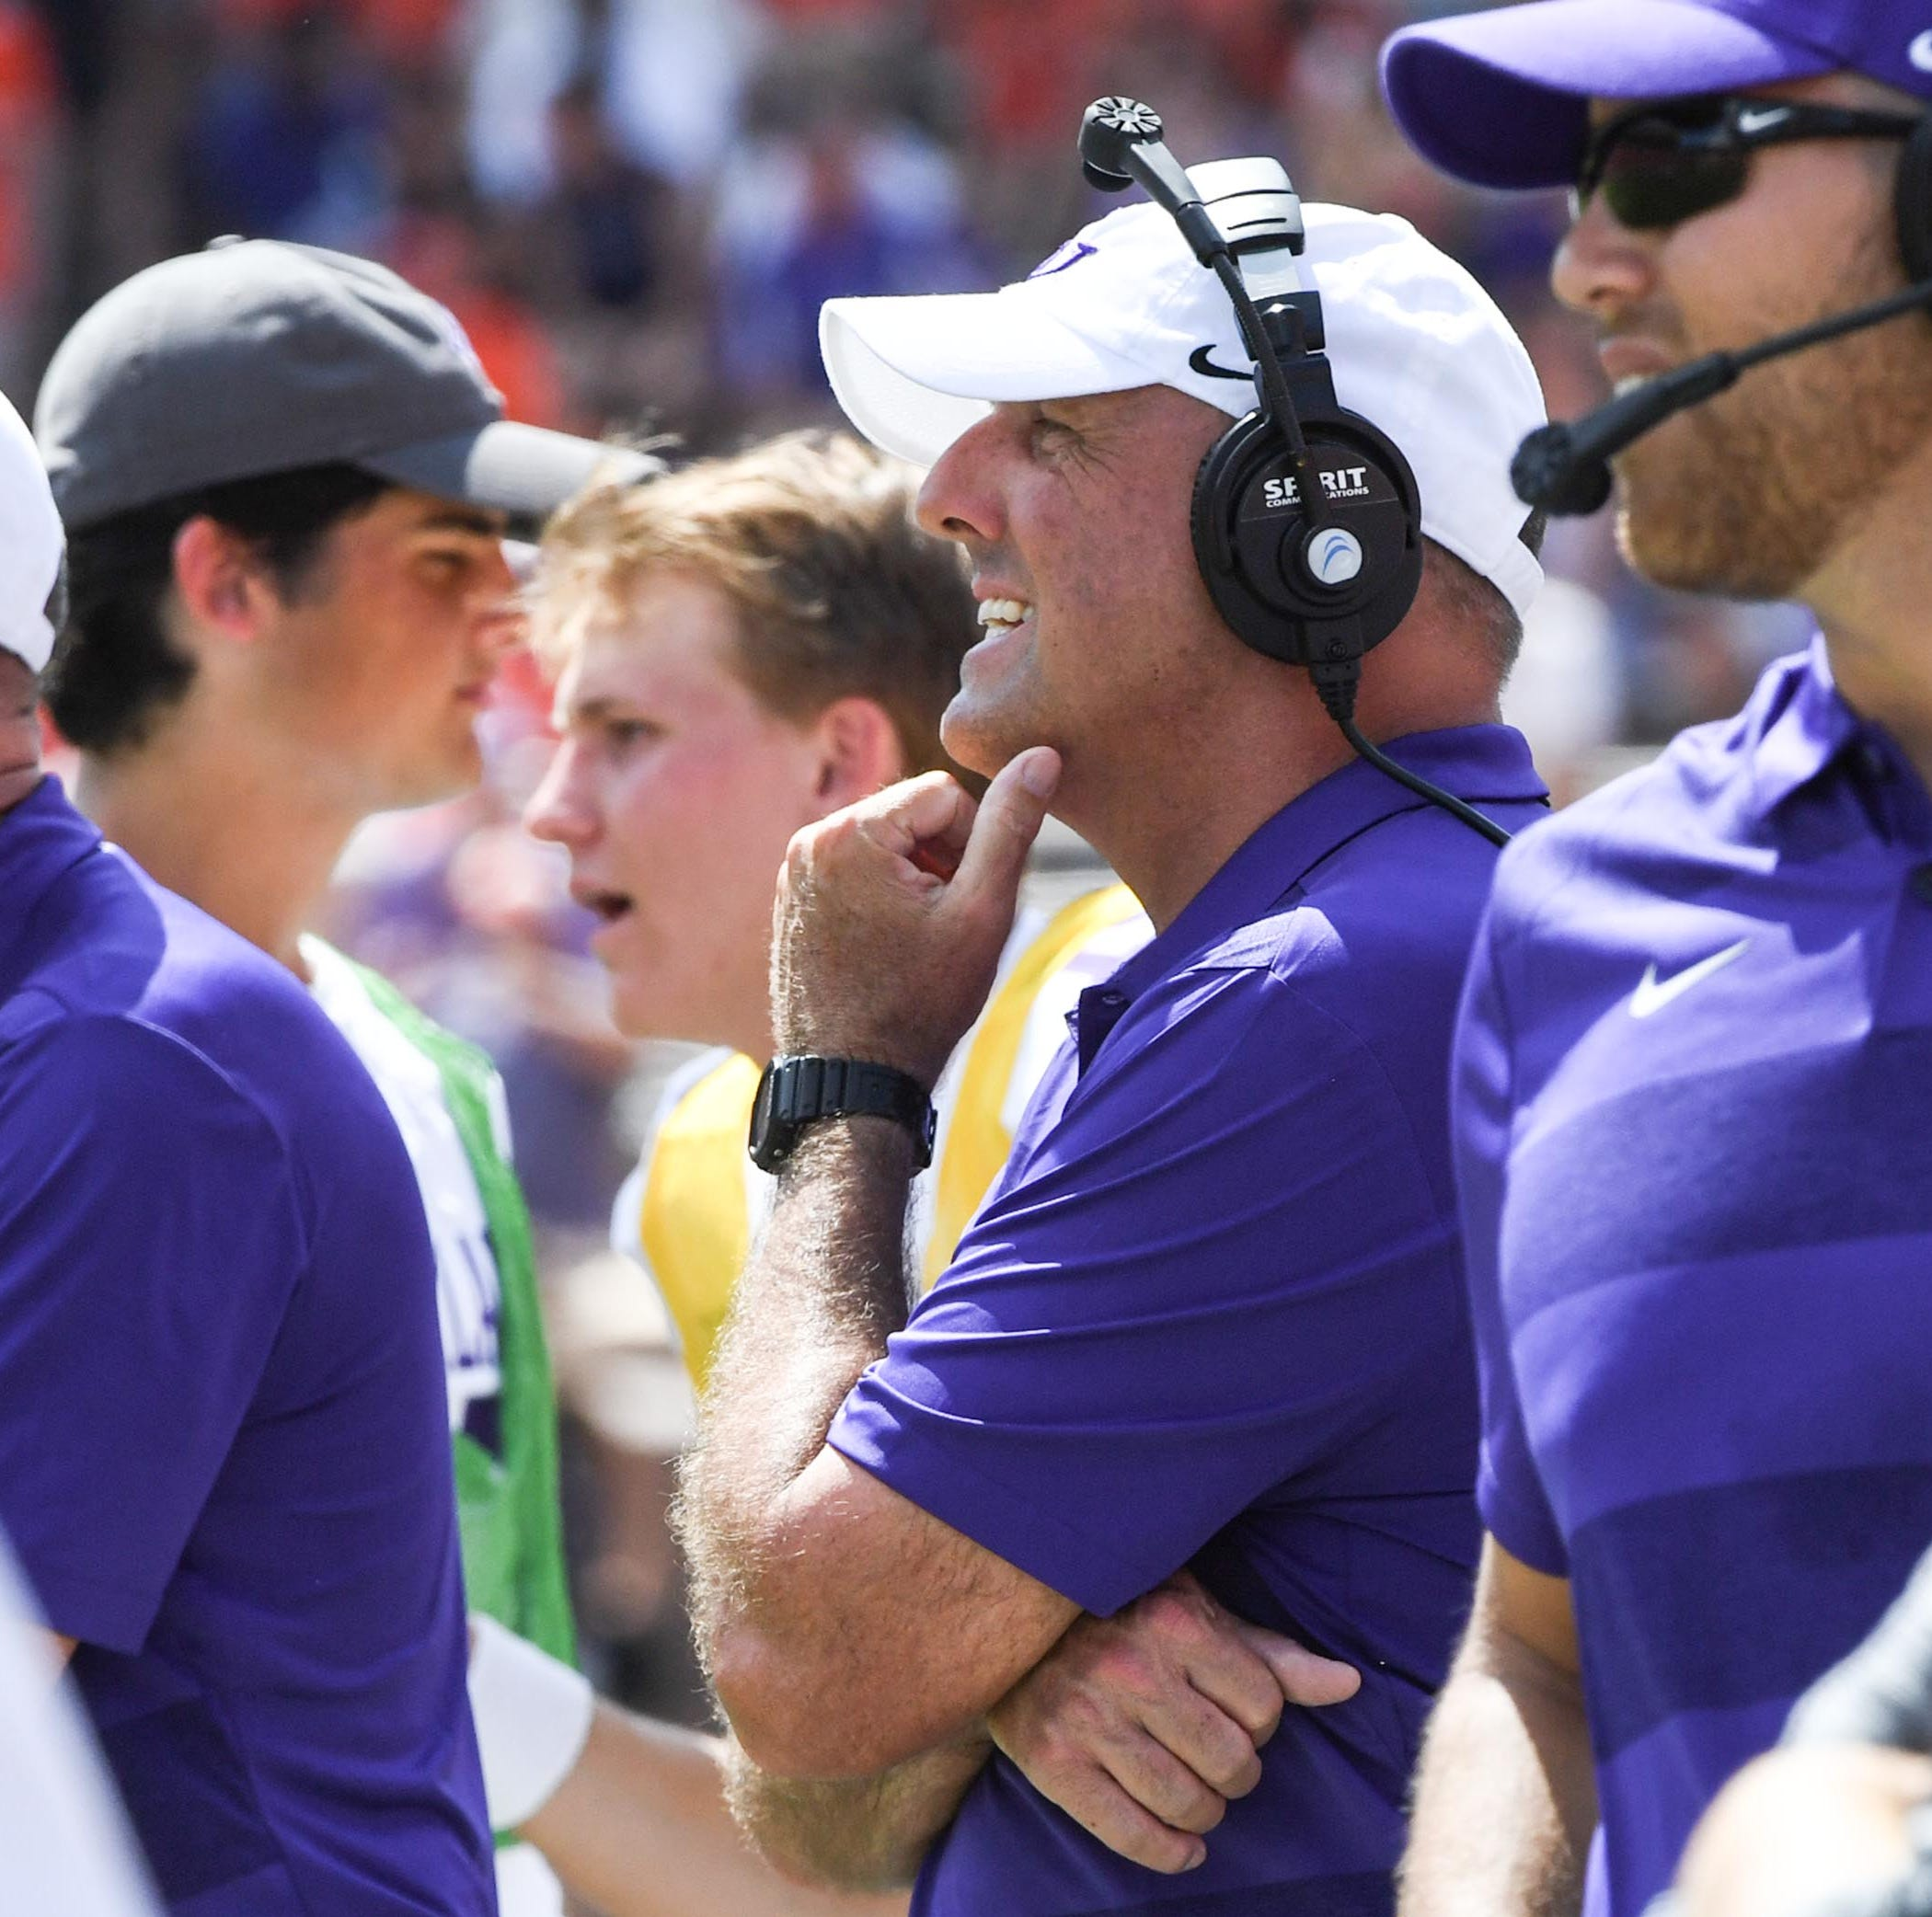 5 takeaways from Furman football team's gut-wrenching loss at ETSU